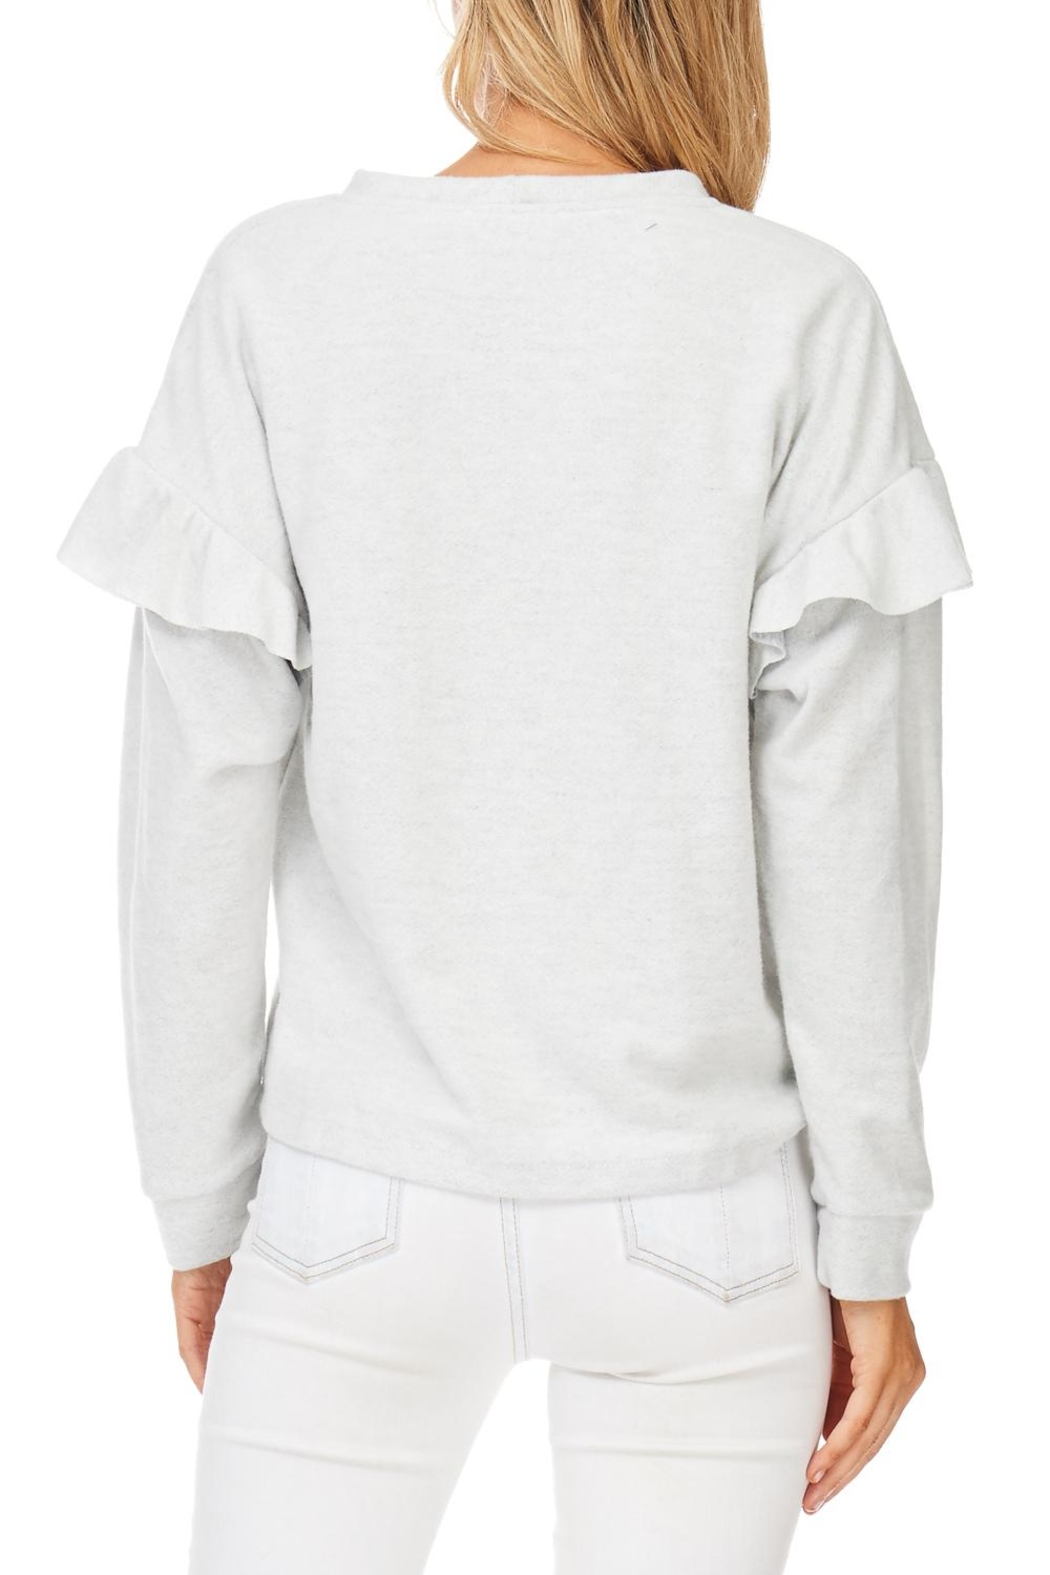 Lush Ruffle Detail Sweatshirt - Side Cropped Image